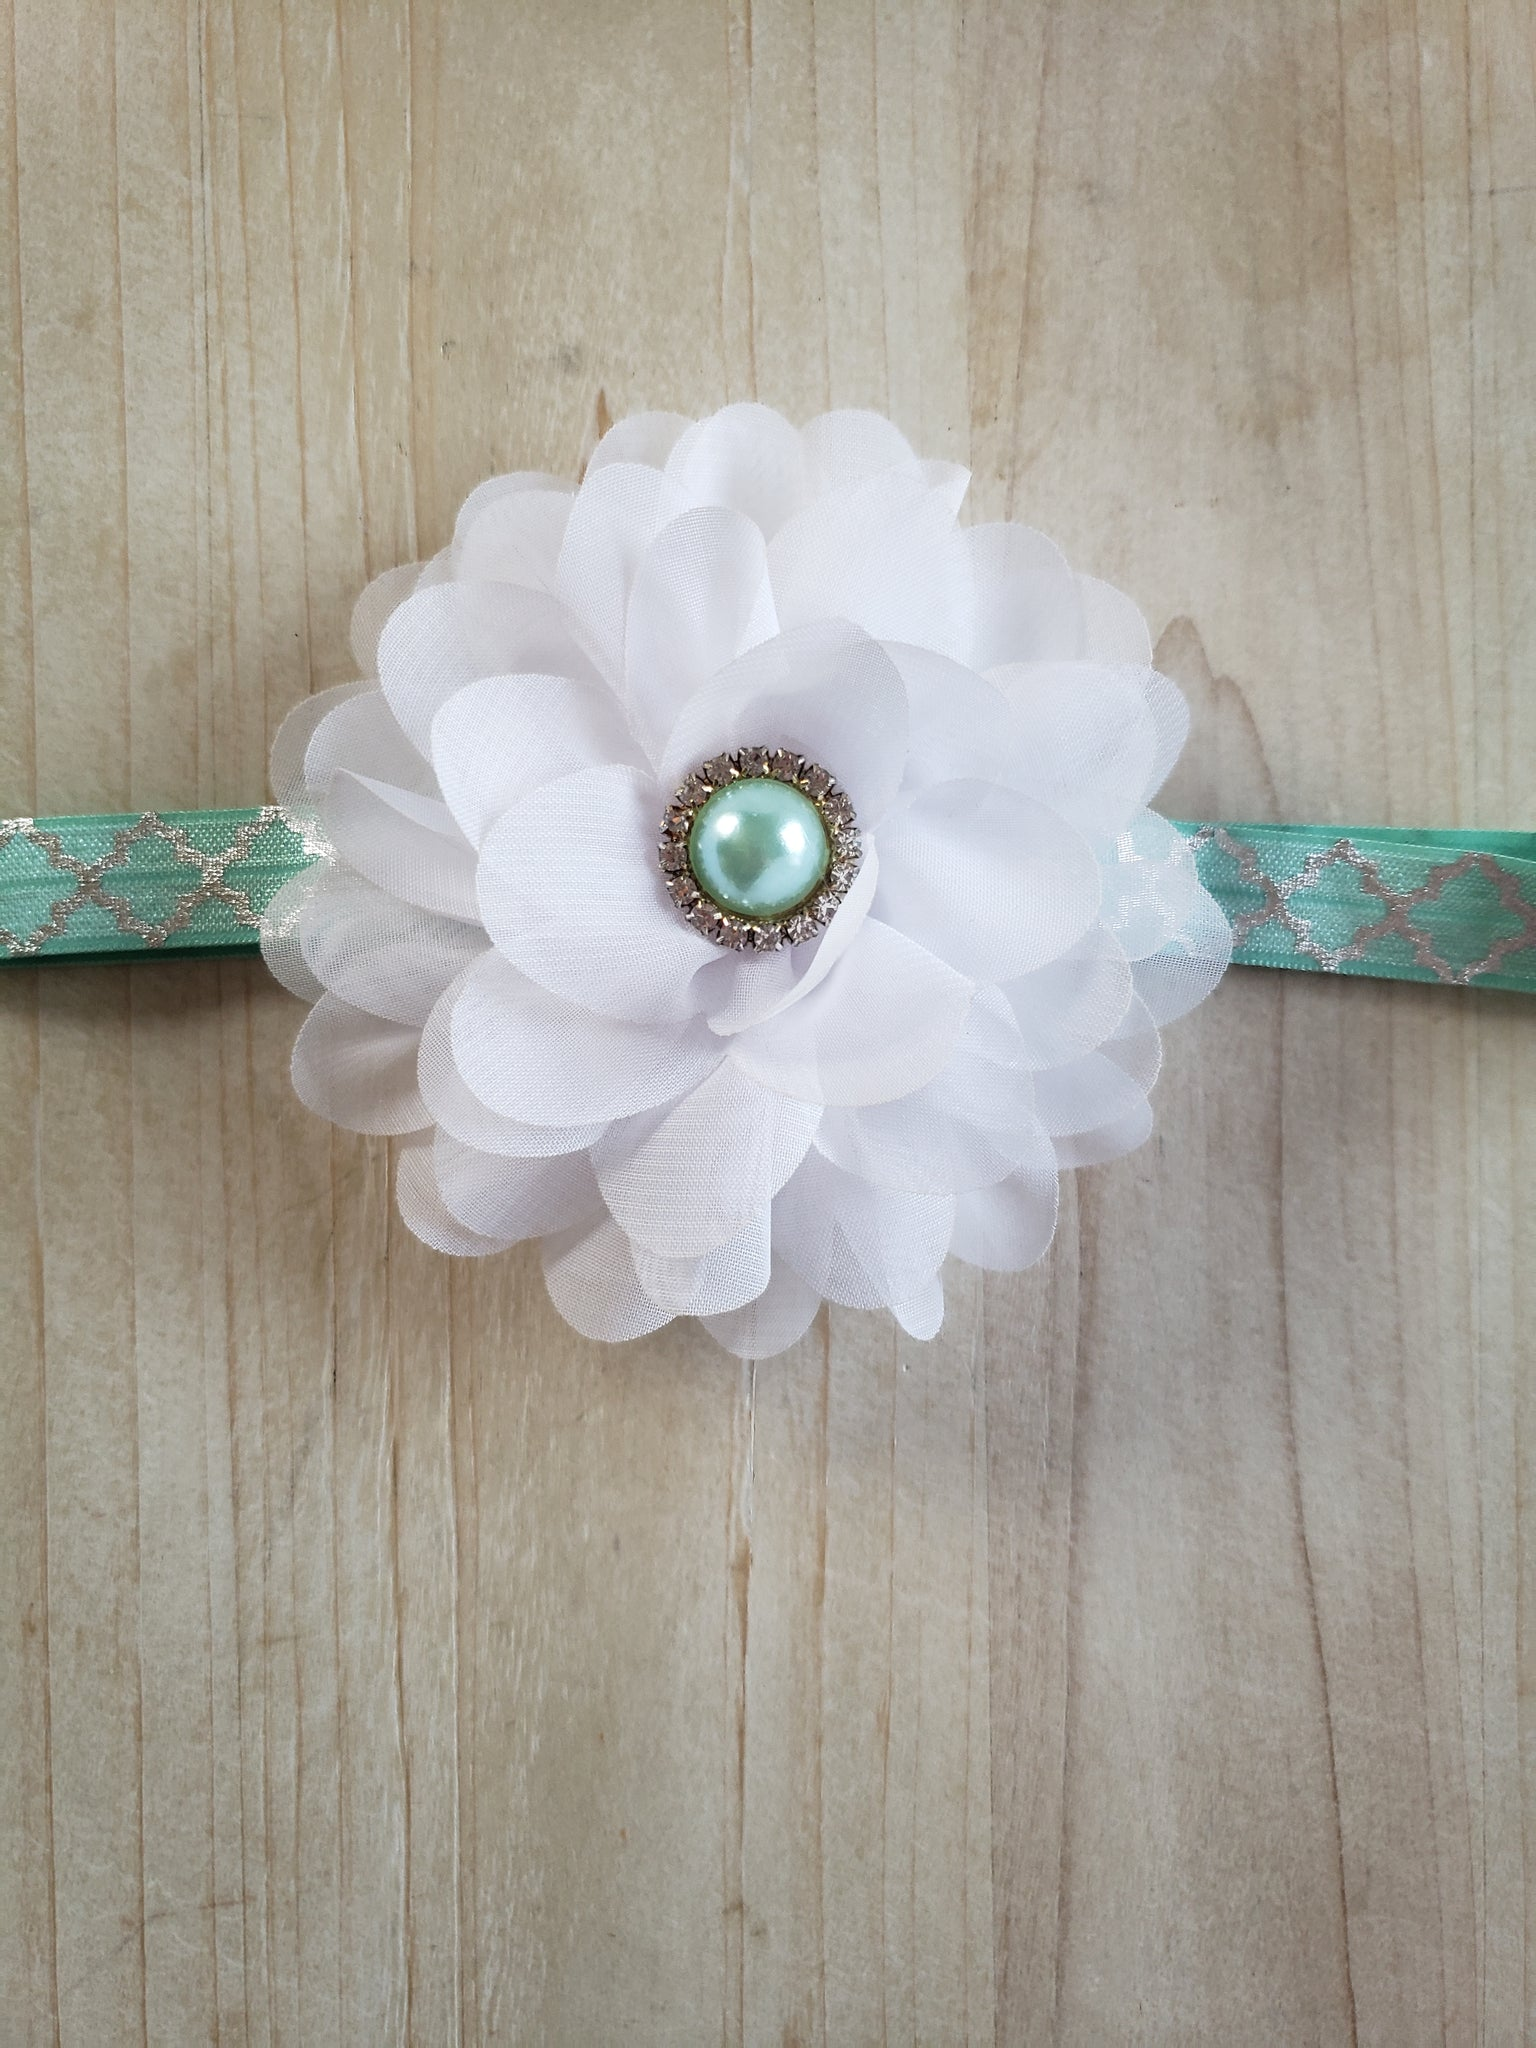 Teal Large White Floral Headband